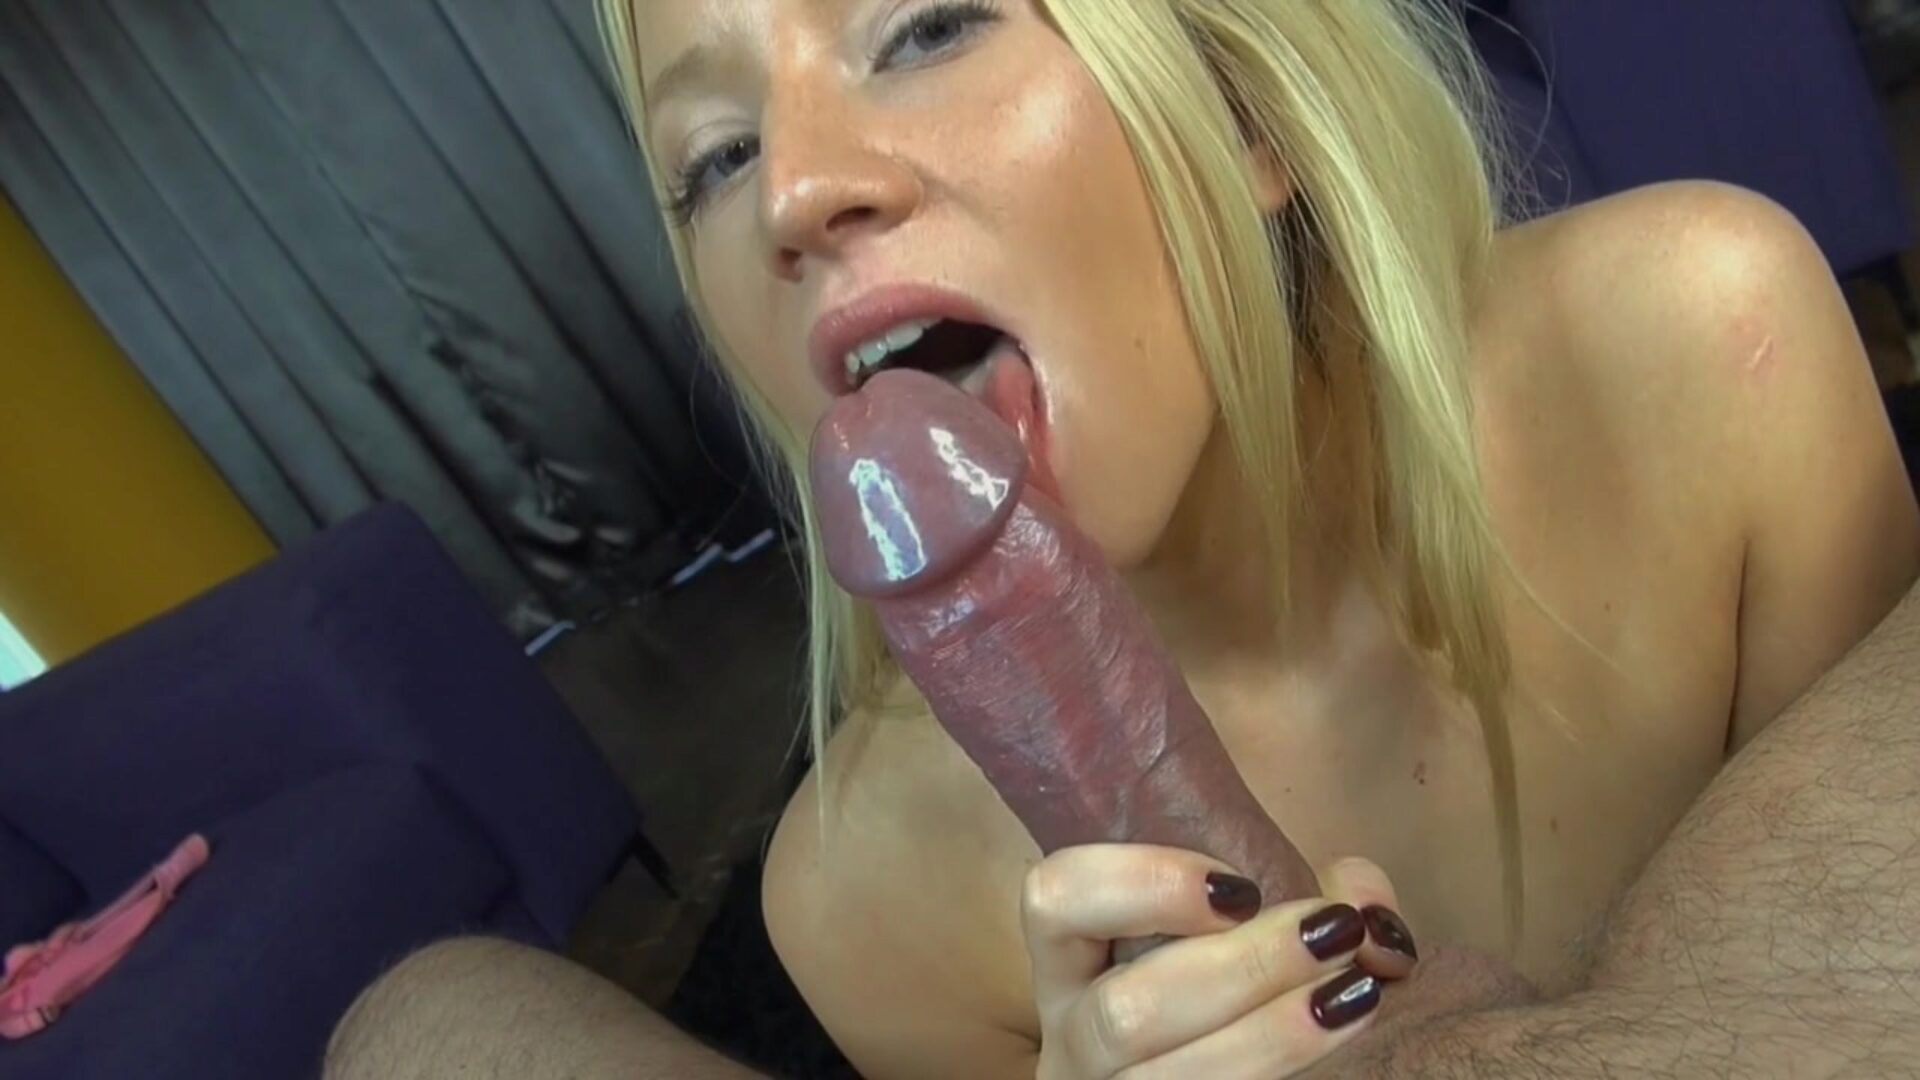 Lickjob Edge Cum PMV Compilation